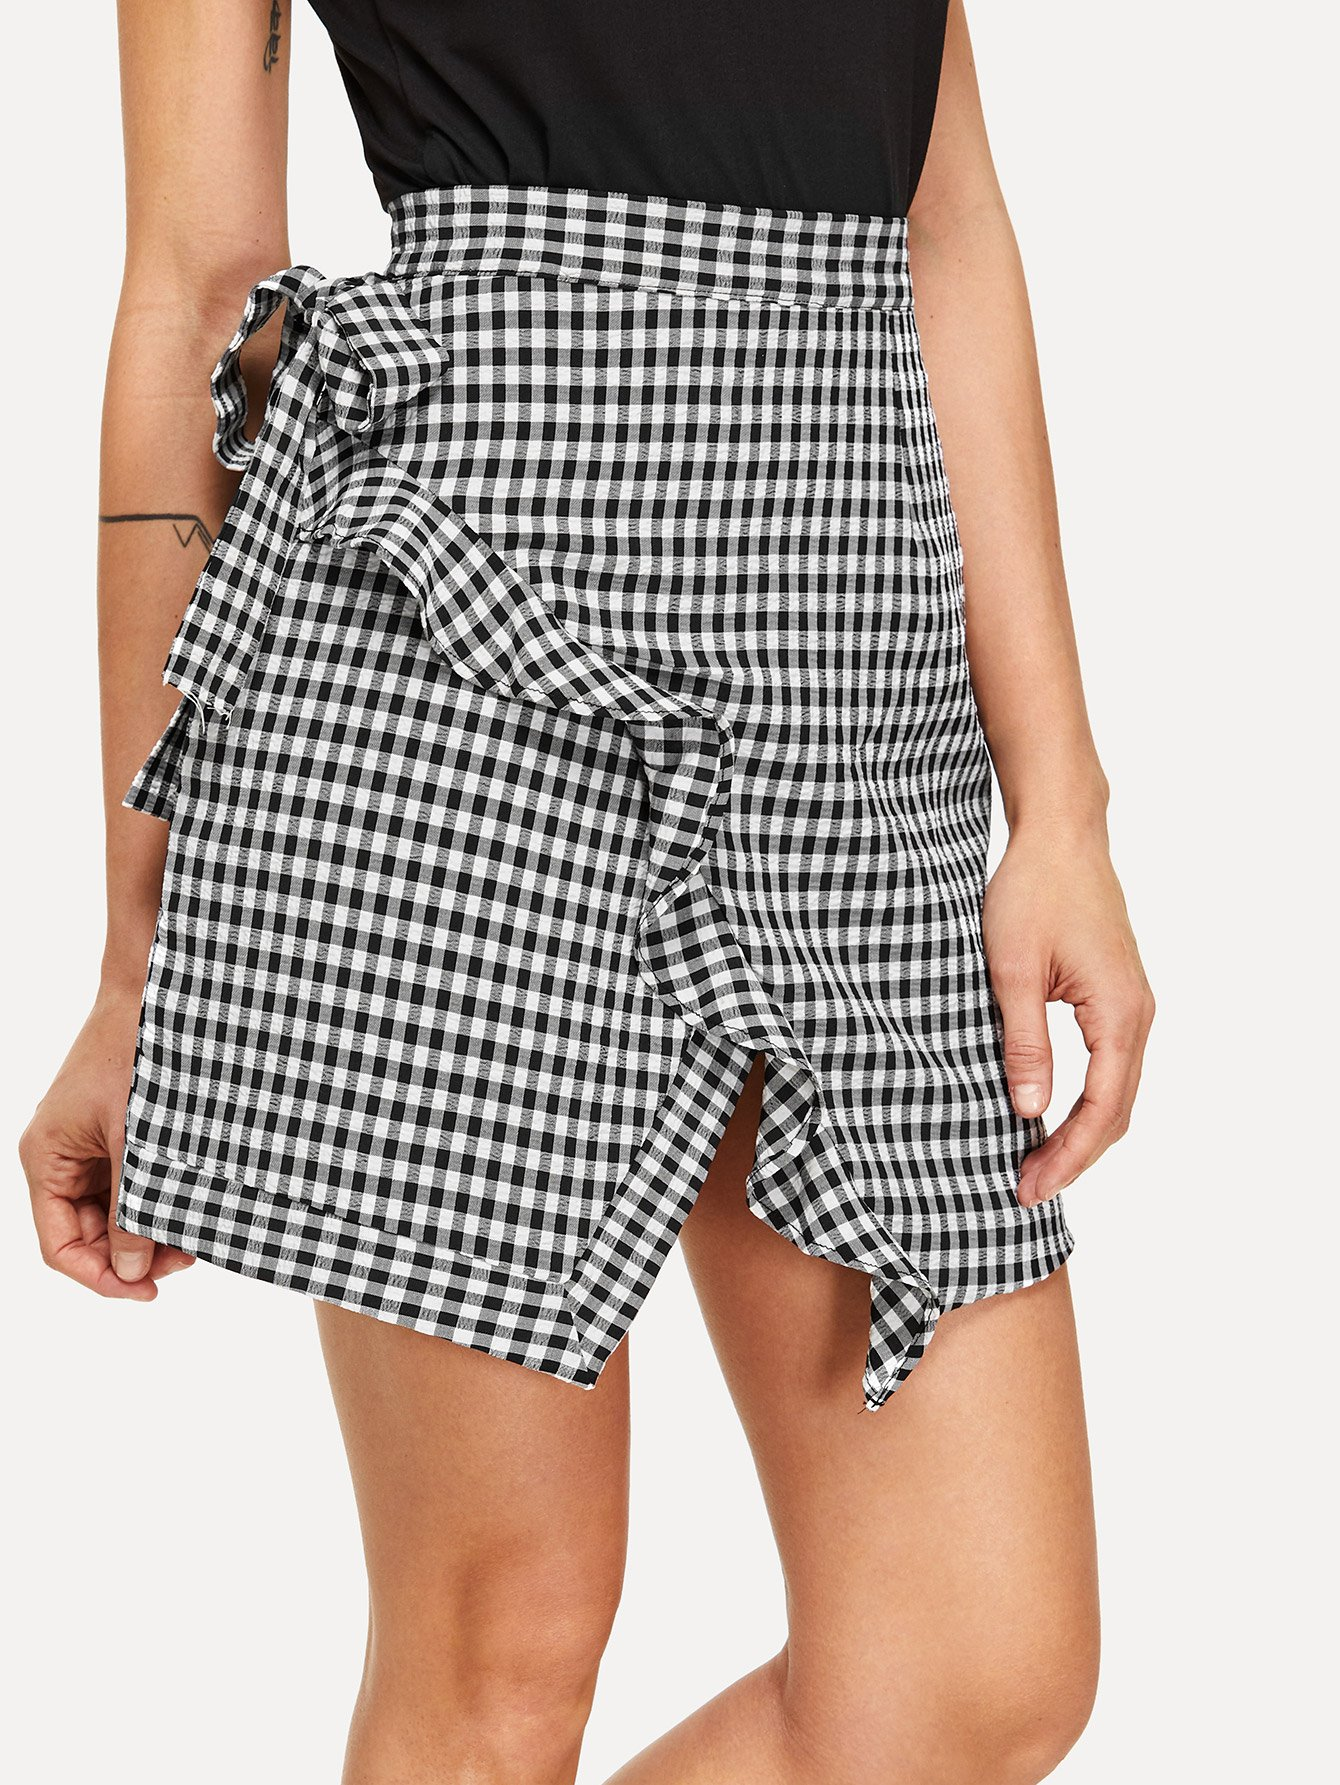 Ruffle Trim Gingham Skirt ruffle waist zip back scallop hem embroidered gingham skirt